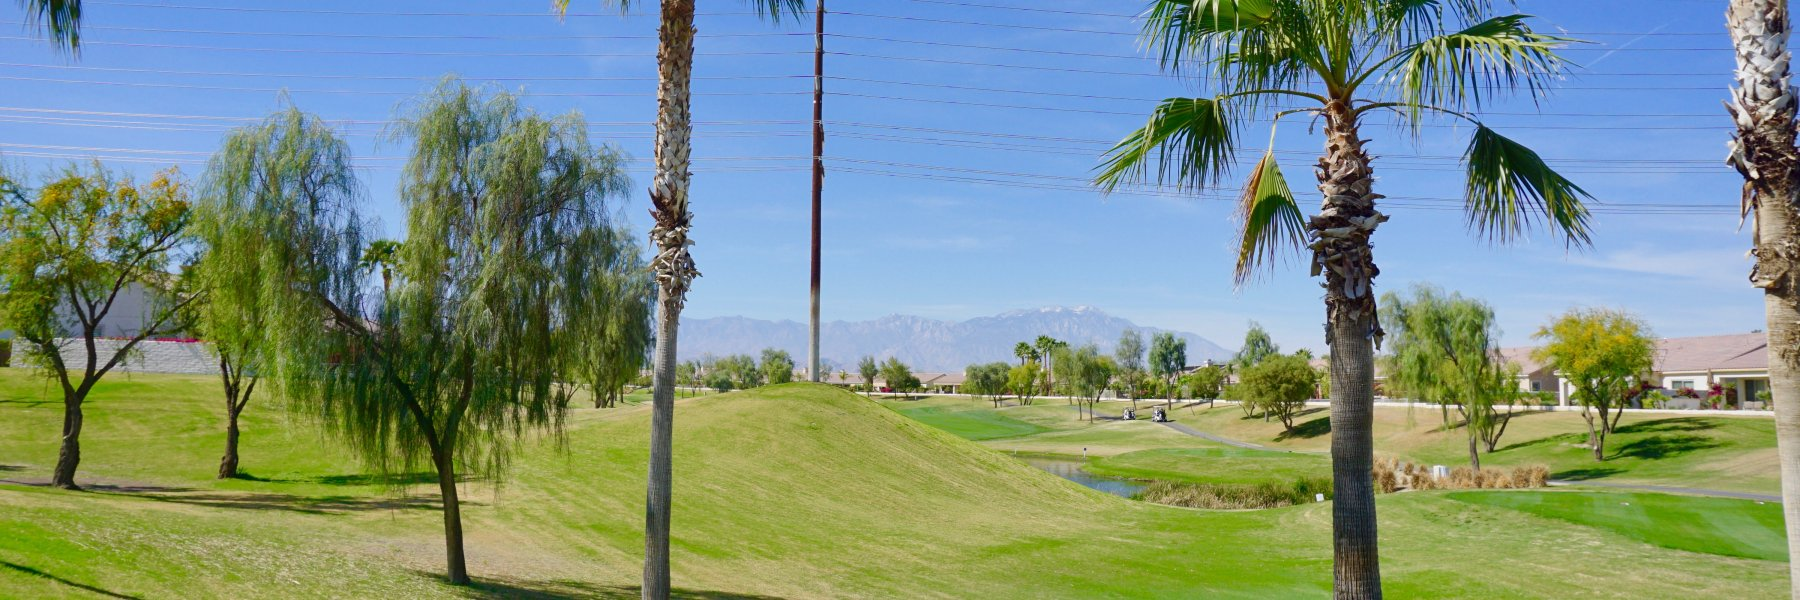 Sun City Shadow Hills is a community of homes in Indio California